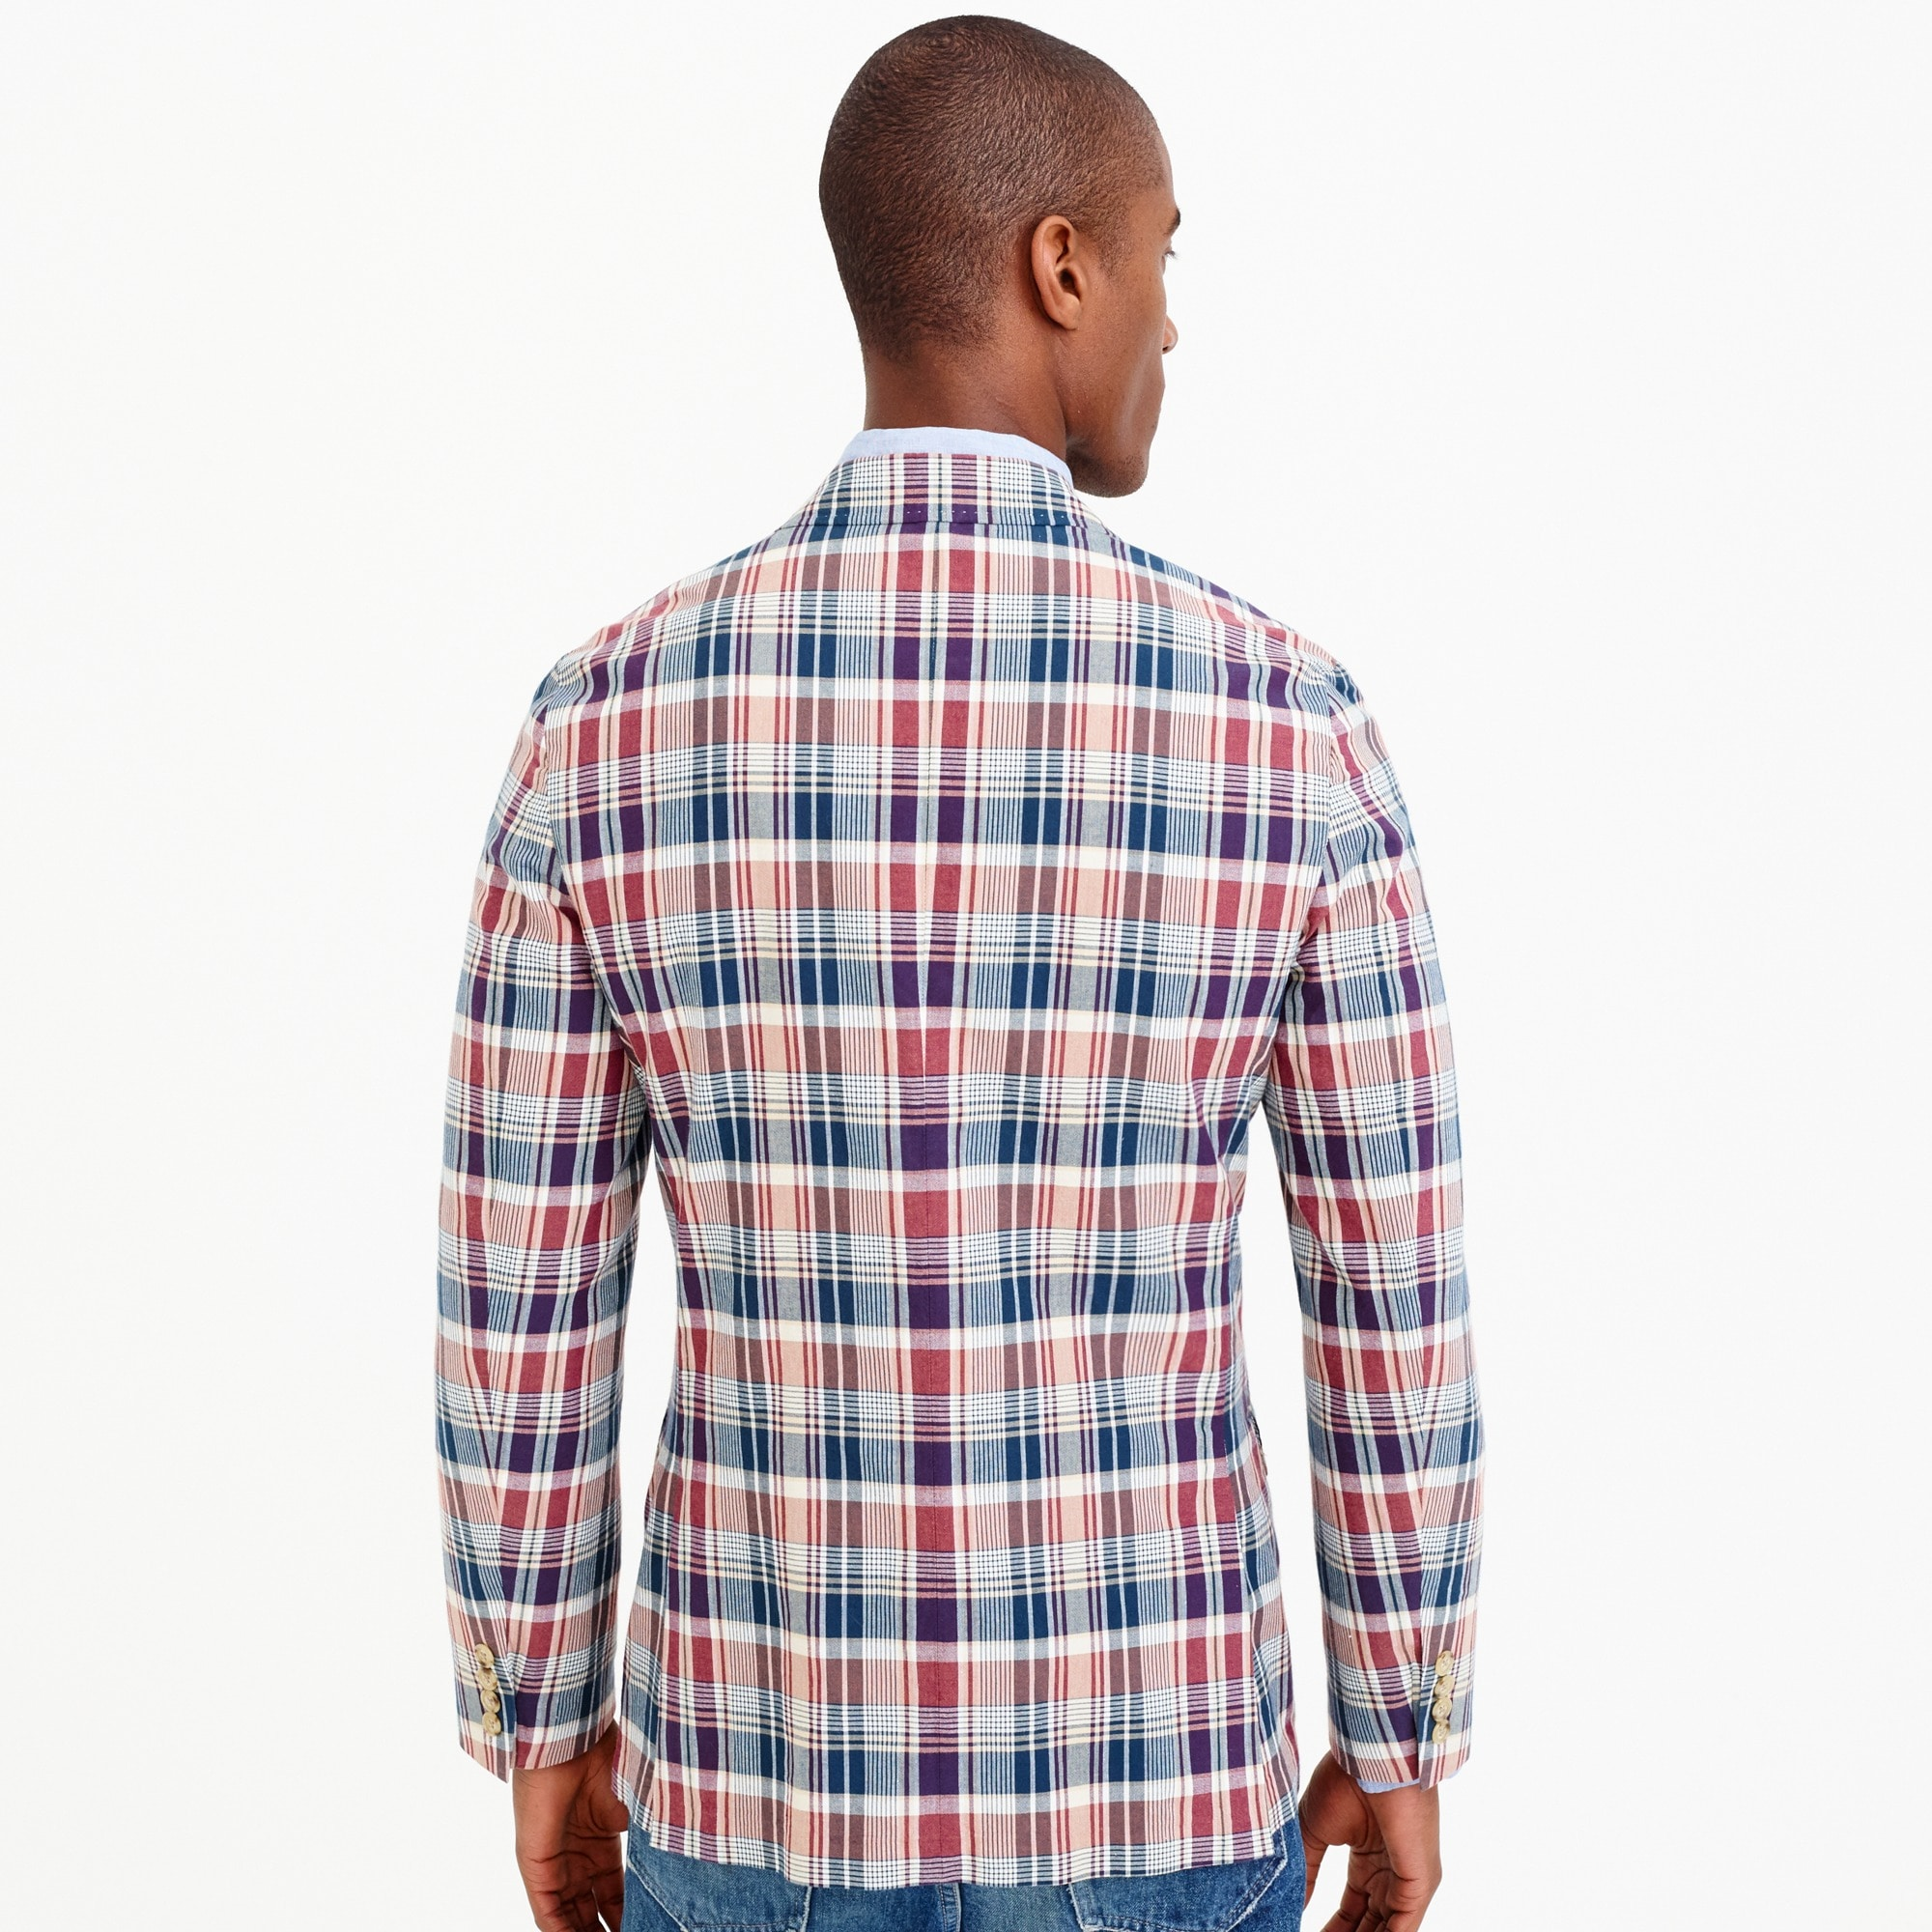 Unstructured Ludlow blazer in madras